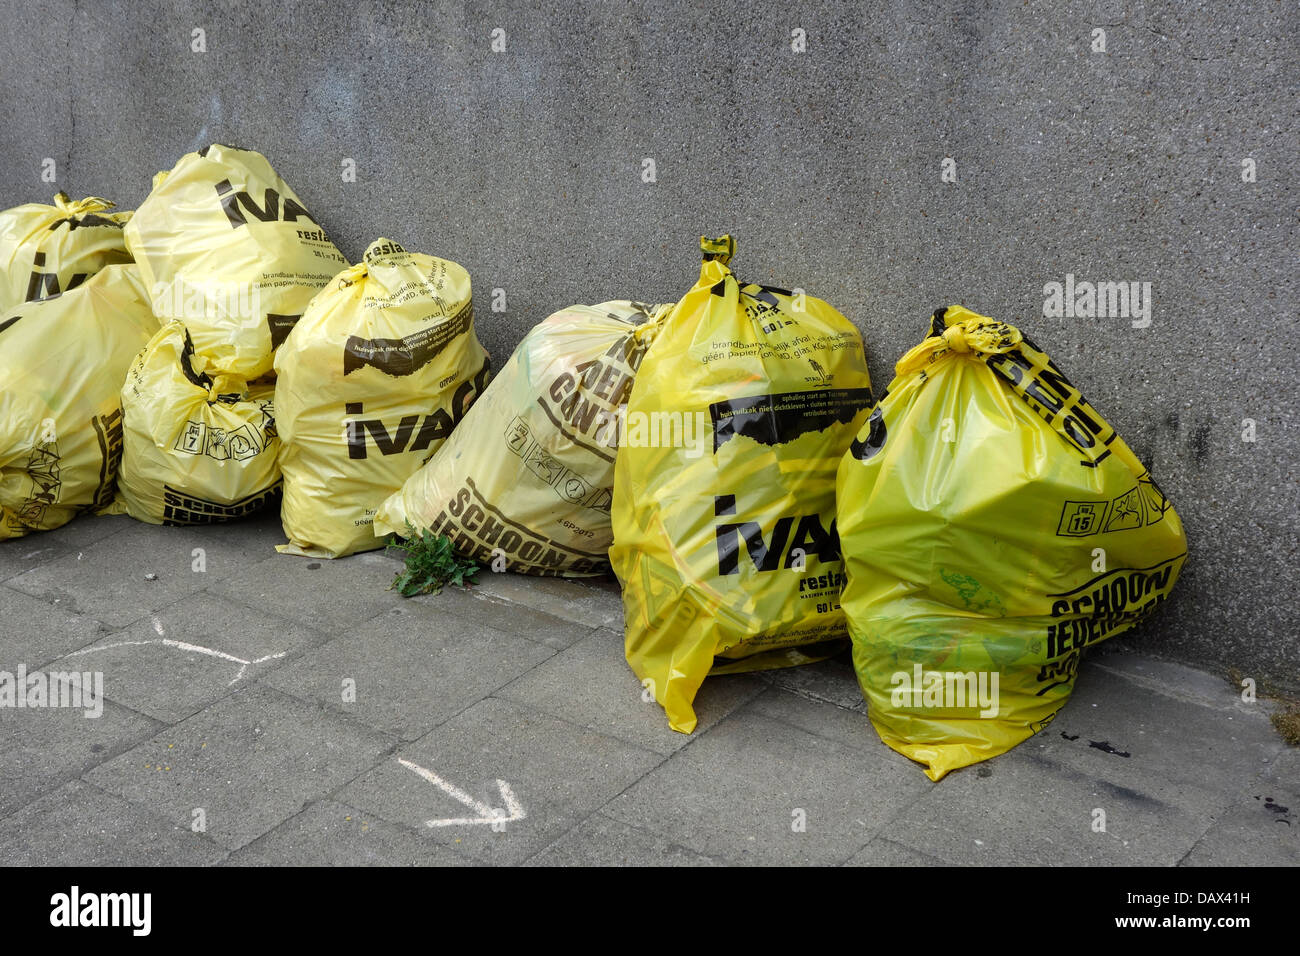 Rubbish bags / trash bag with household waste on pavement in front of house in city street - Stock Image